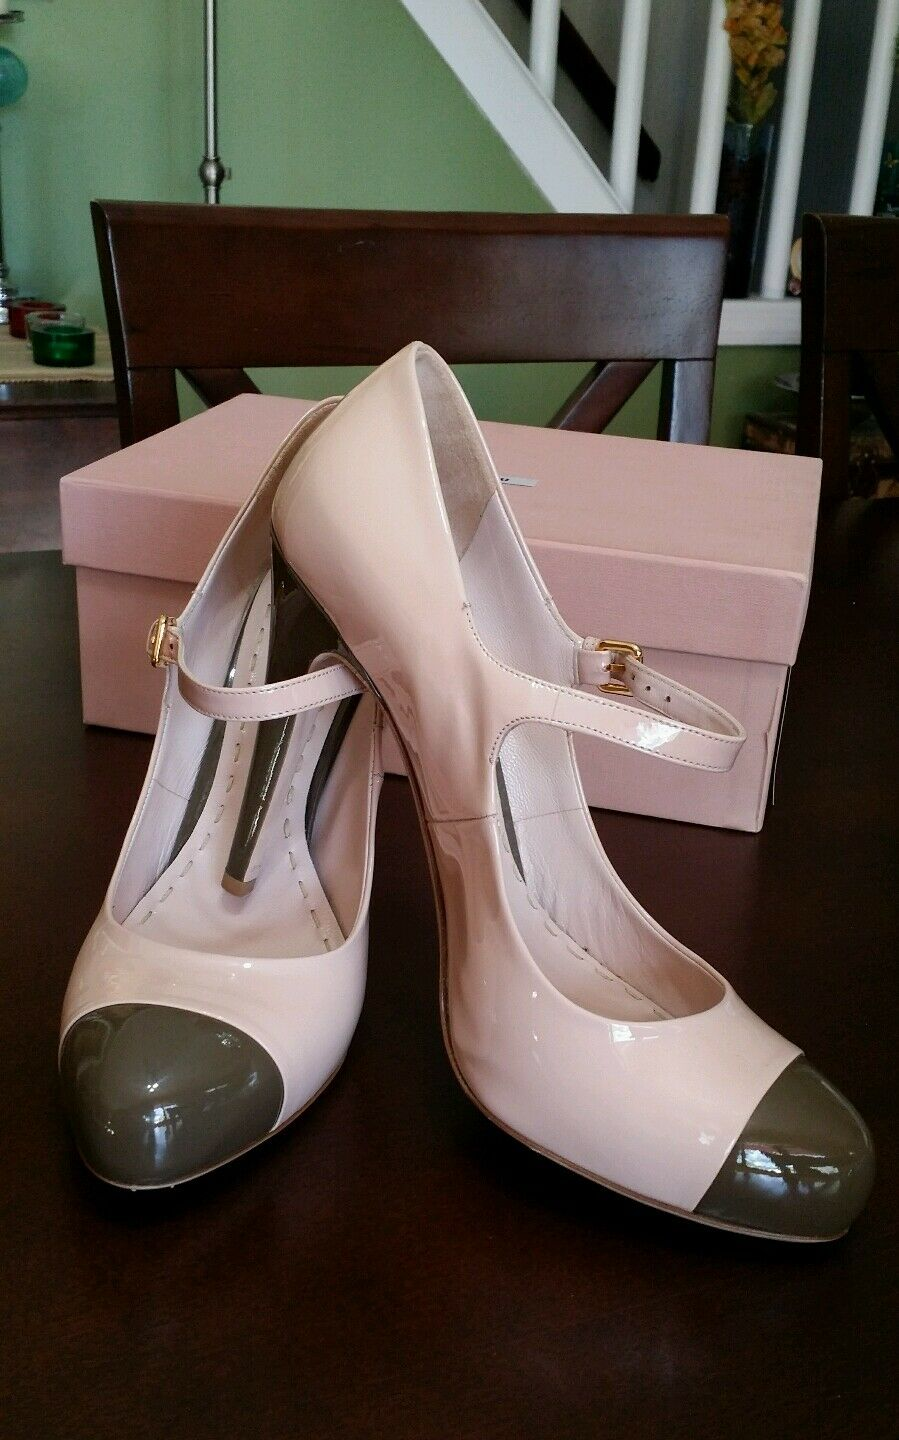 PRADA MIU MIU,  VERNICE CIPRIA ARGILLA 40  MARY JANE NUDE CAP TOE 40. WITH BOX